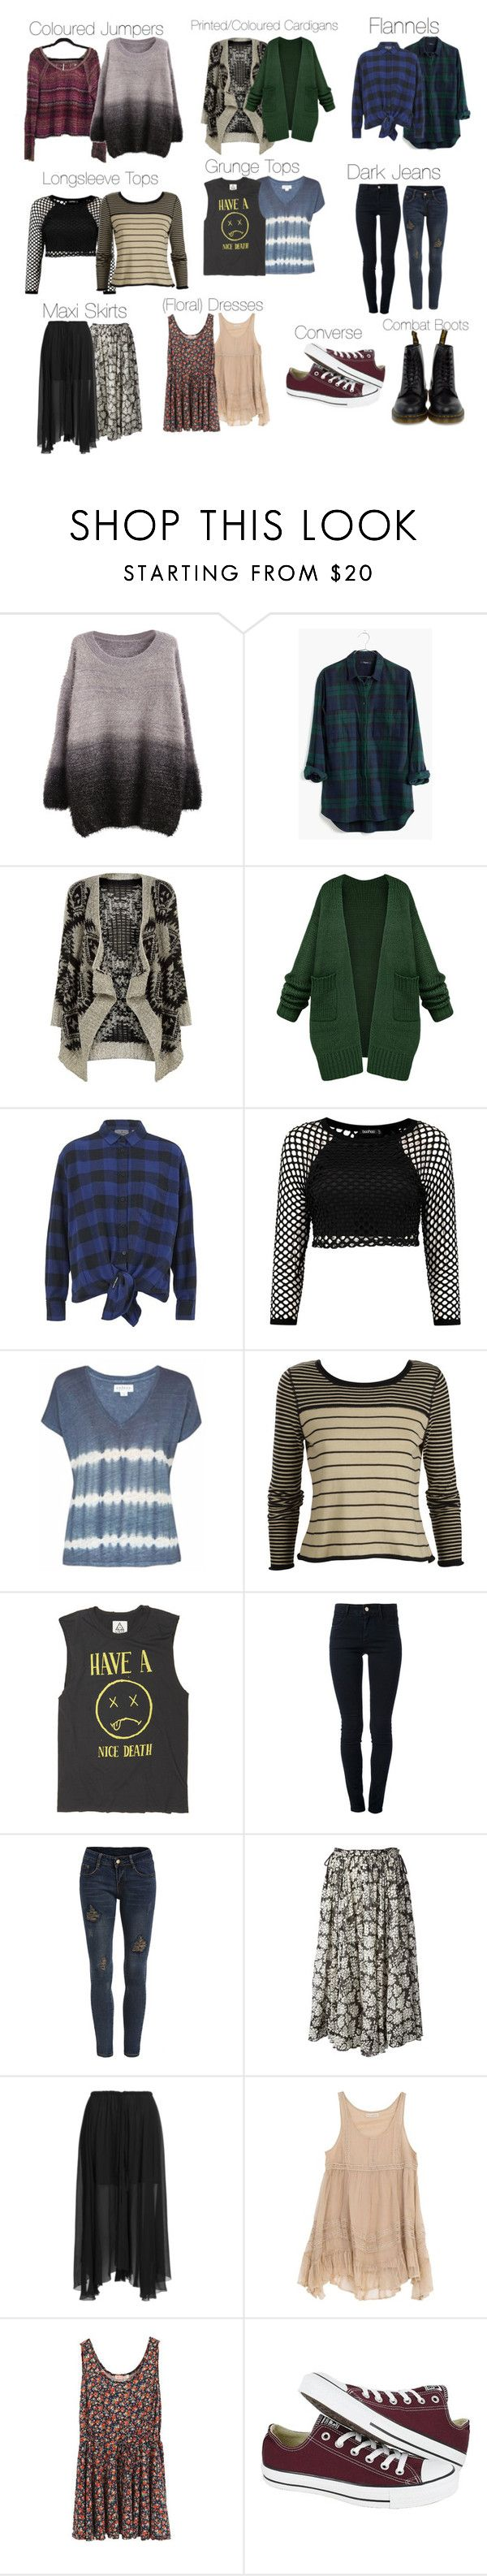 """""""Violet Harmon - ahs / american horror story"""" by shadyannon ❤ liked on Polyvore featuring Madewell, Mela Loves London, Cheap Monday, Velvet, STELLA McCARTNEY, Laurence Doligé, Étoile Isabel Marant, Billabong, Converse and Dr. Martens"""